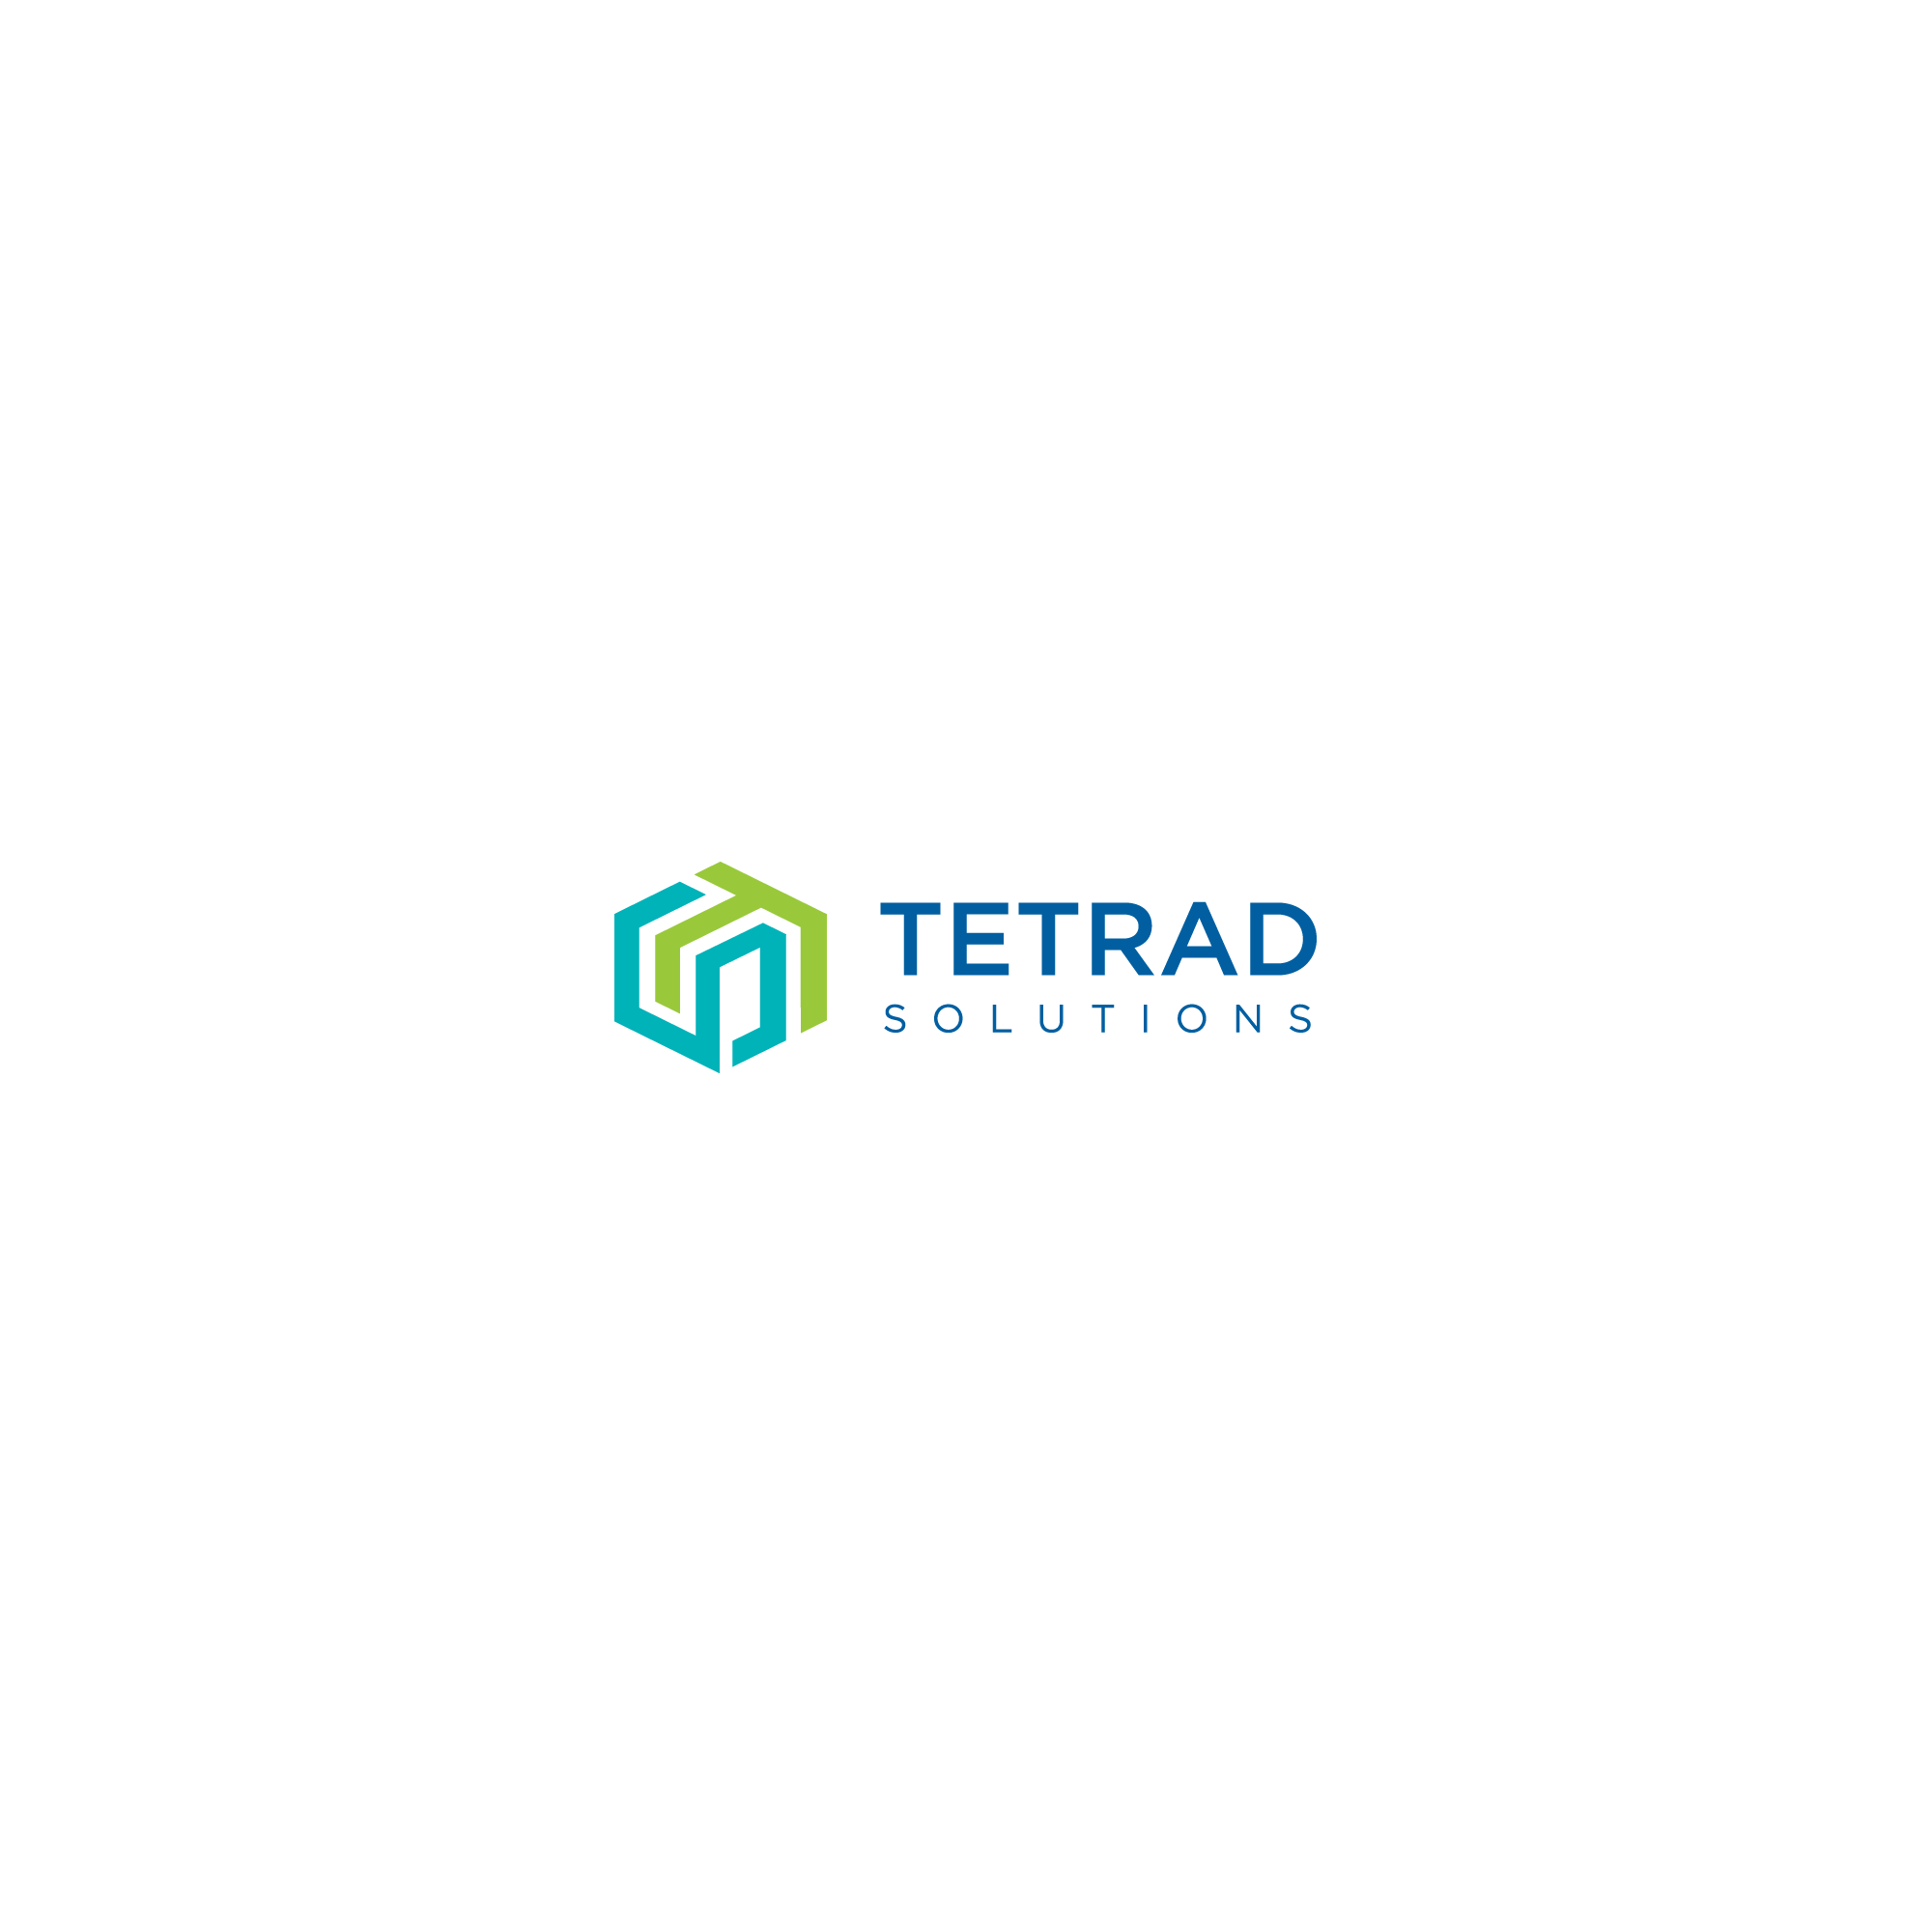 Overused logo designs sold on tetrad for Medical design firms